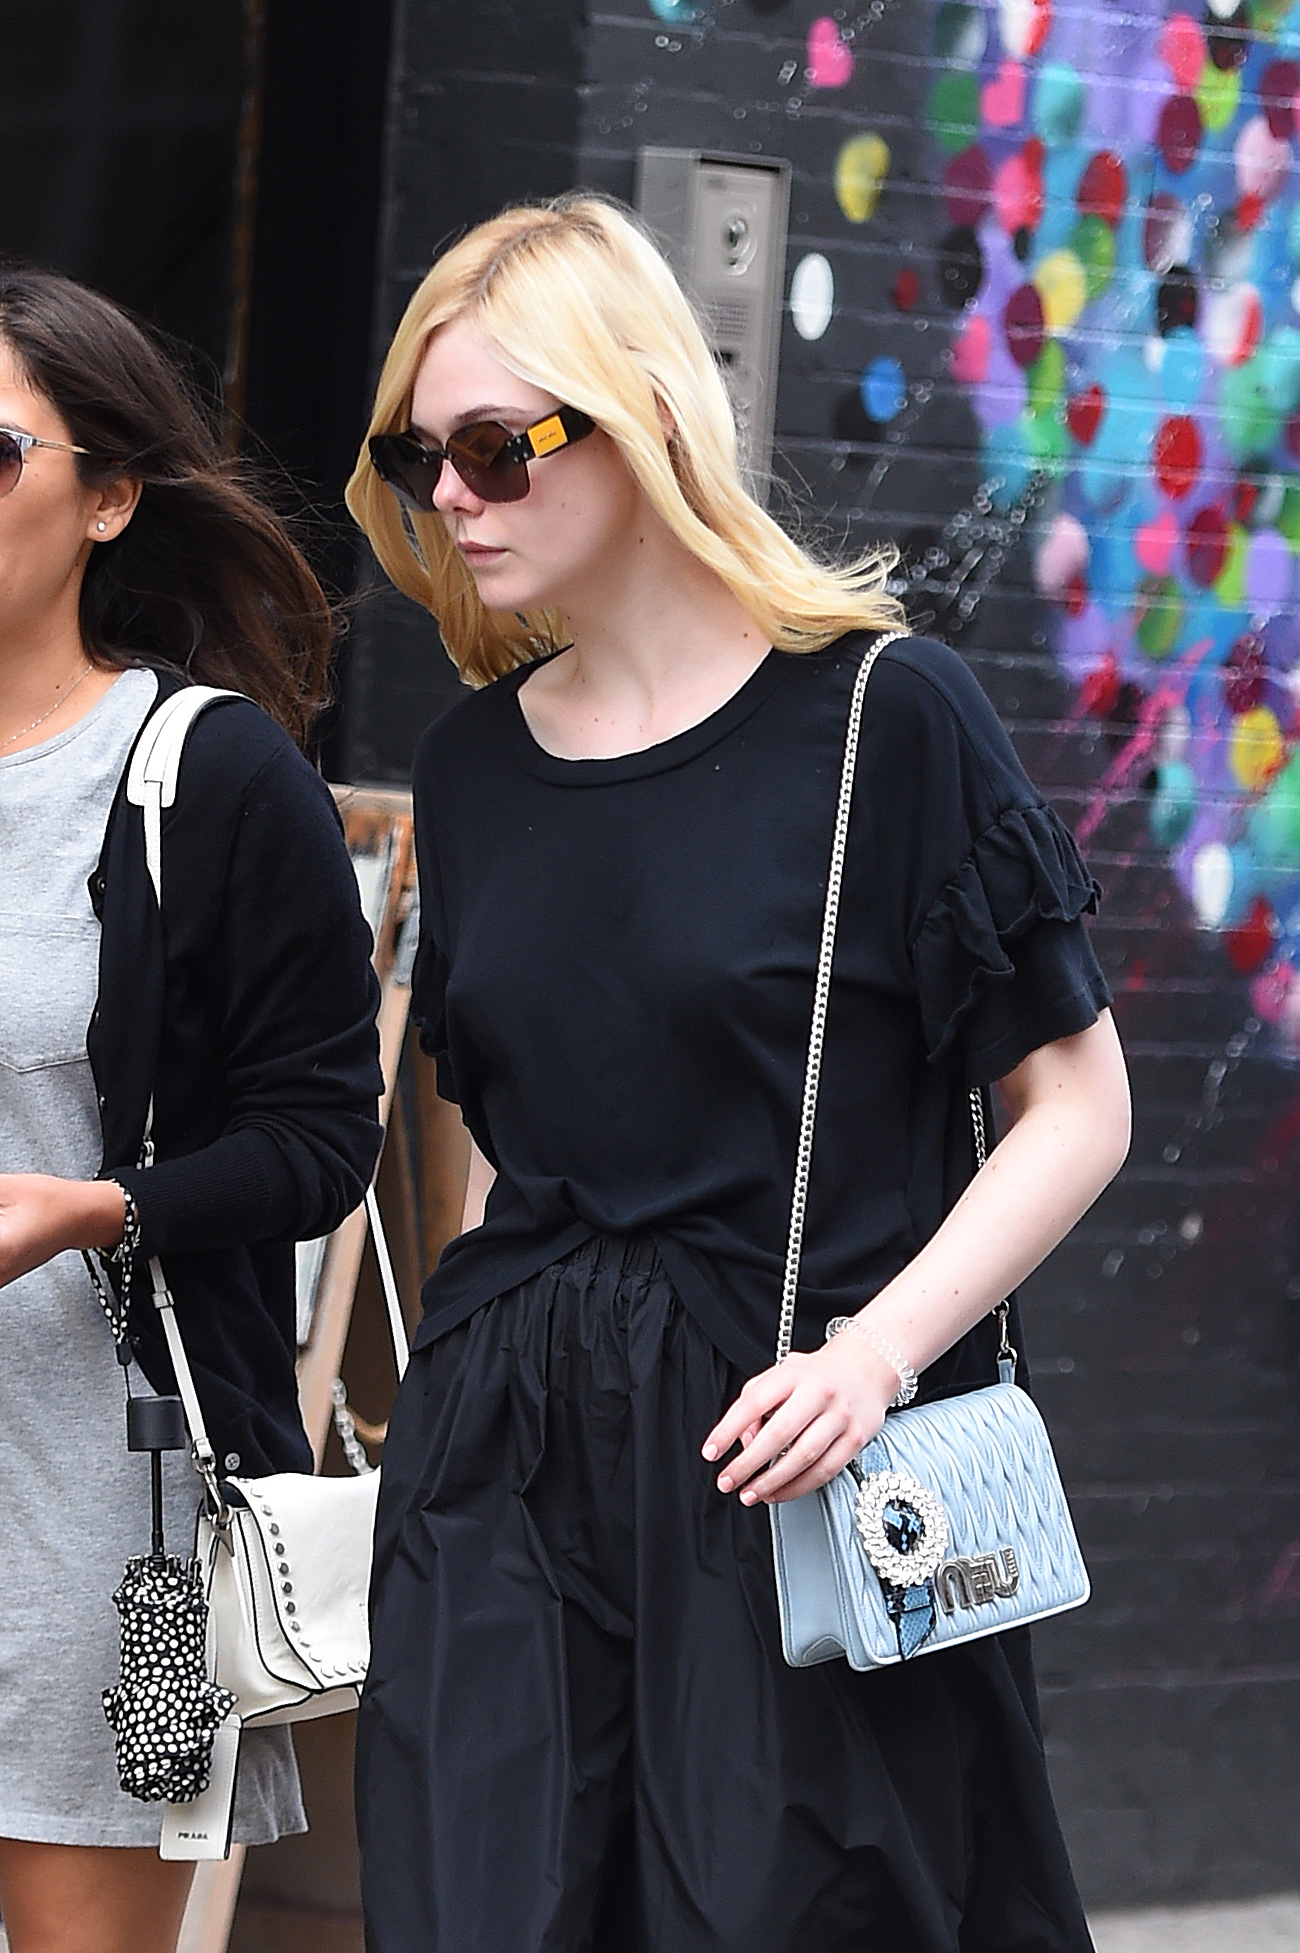 NEW YORK - SEPTEMBER 07: Elle Fanning is seen out in Manhattan on September 07, 2017 in New York, New York.